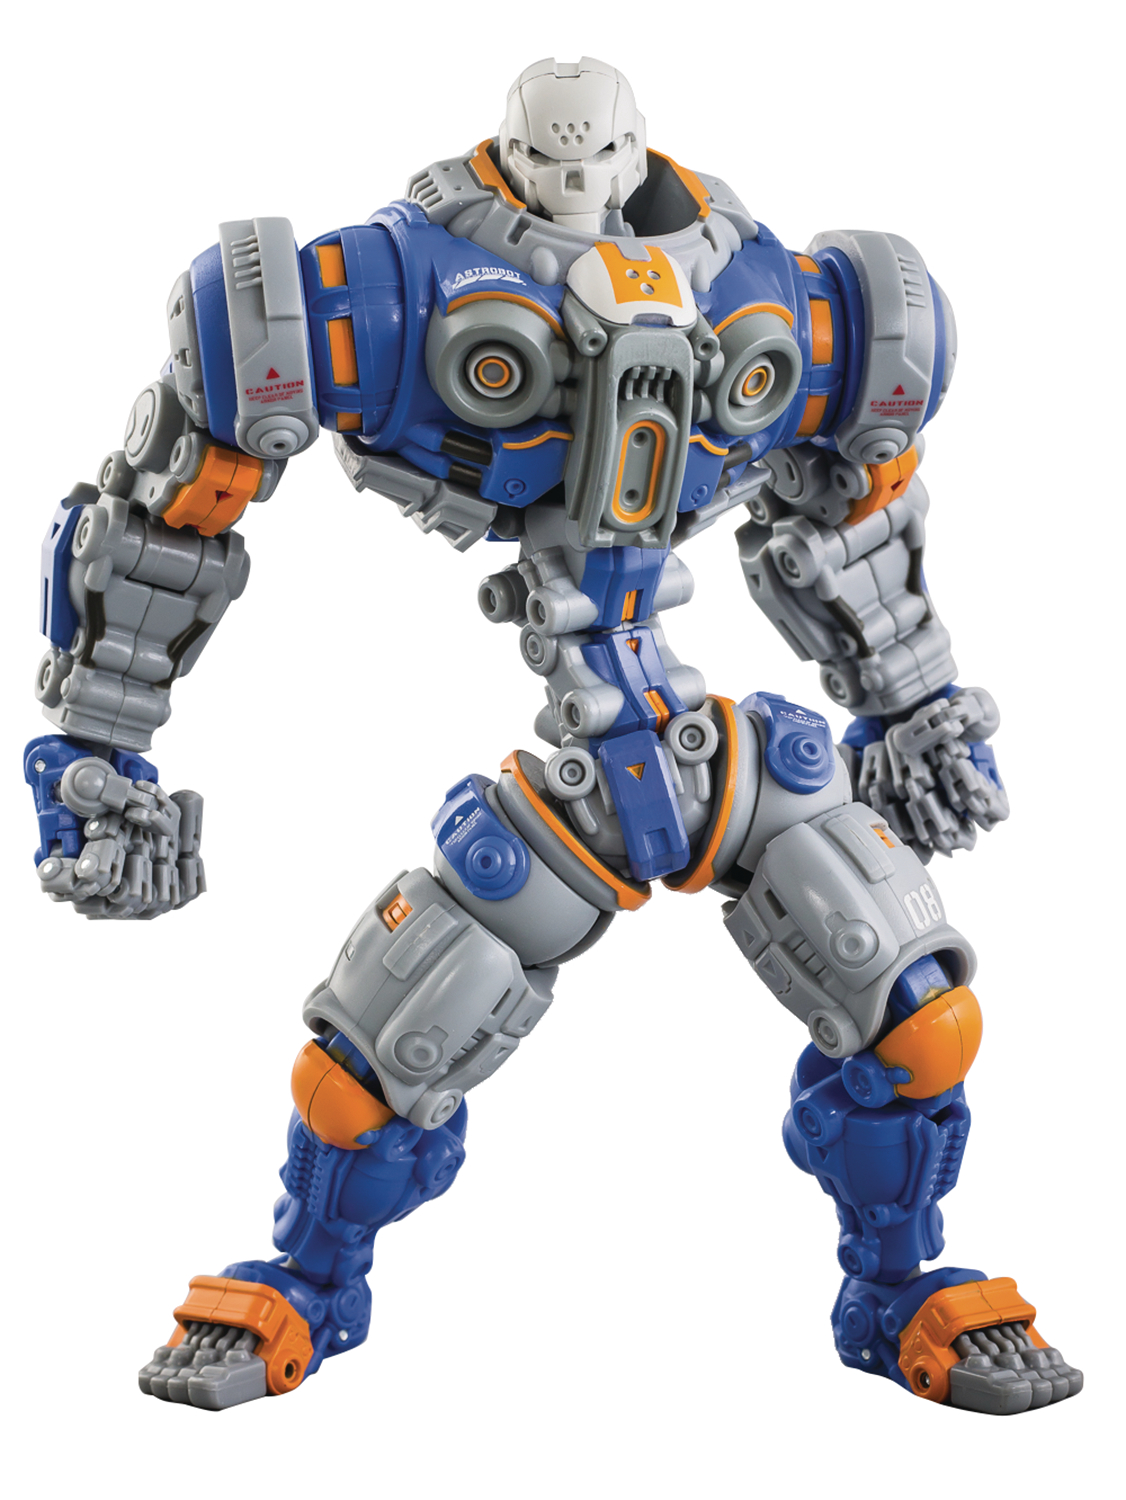 ASTROBOTS APOLLO ACTION FIGURE